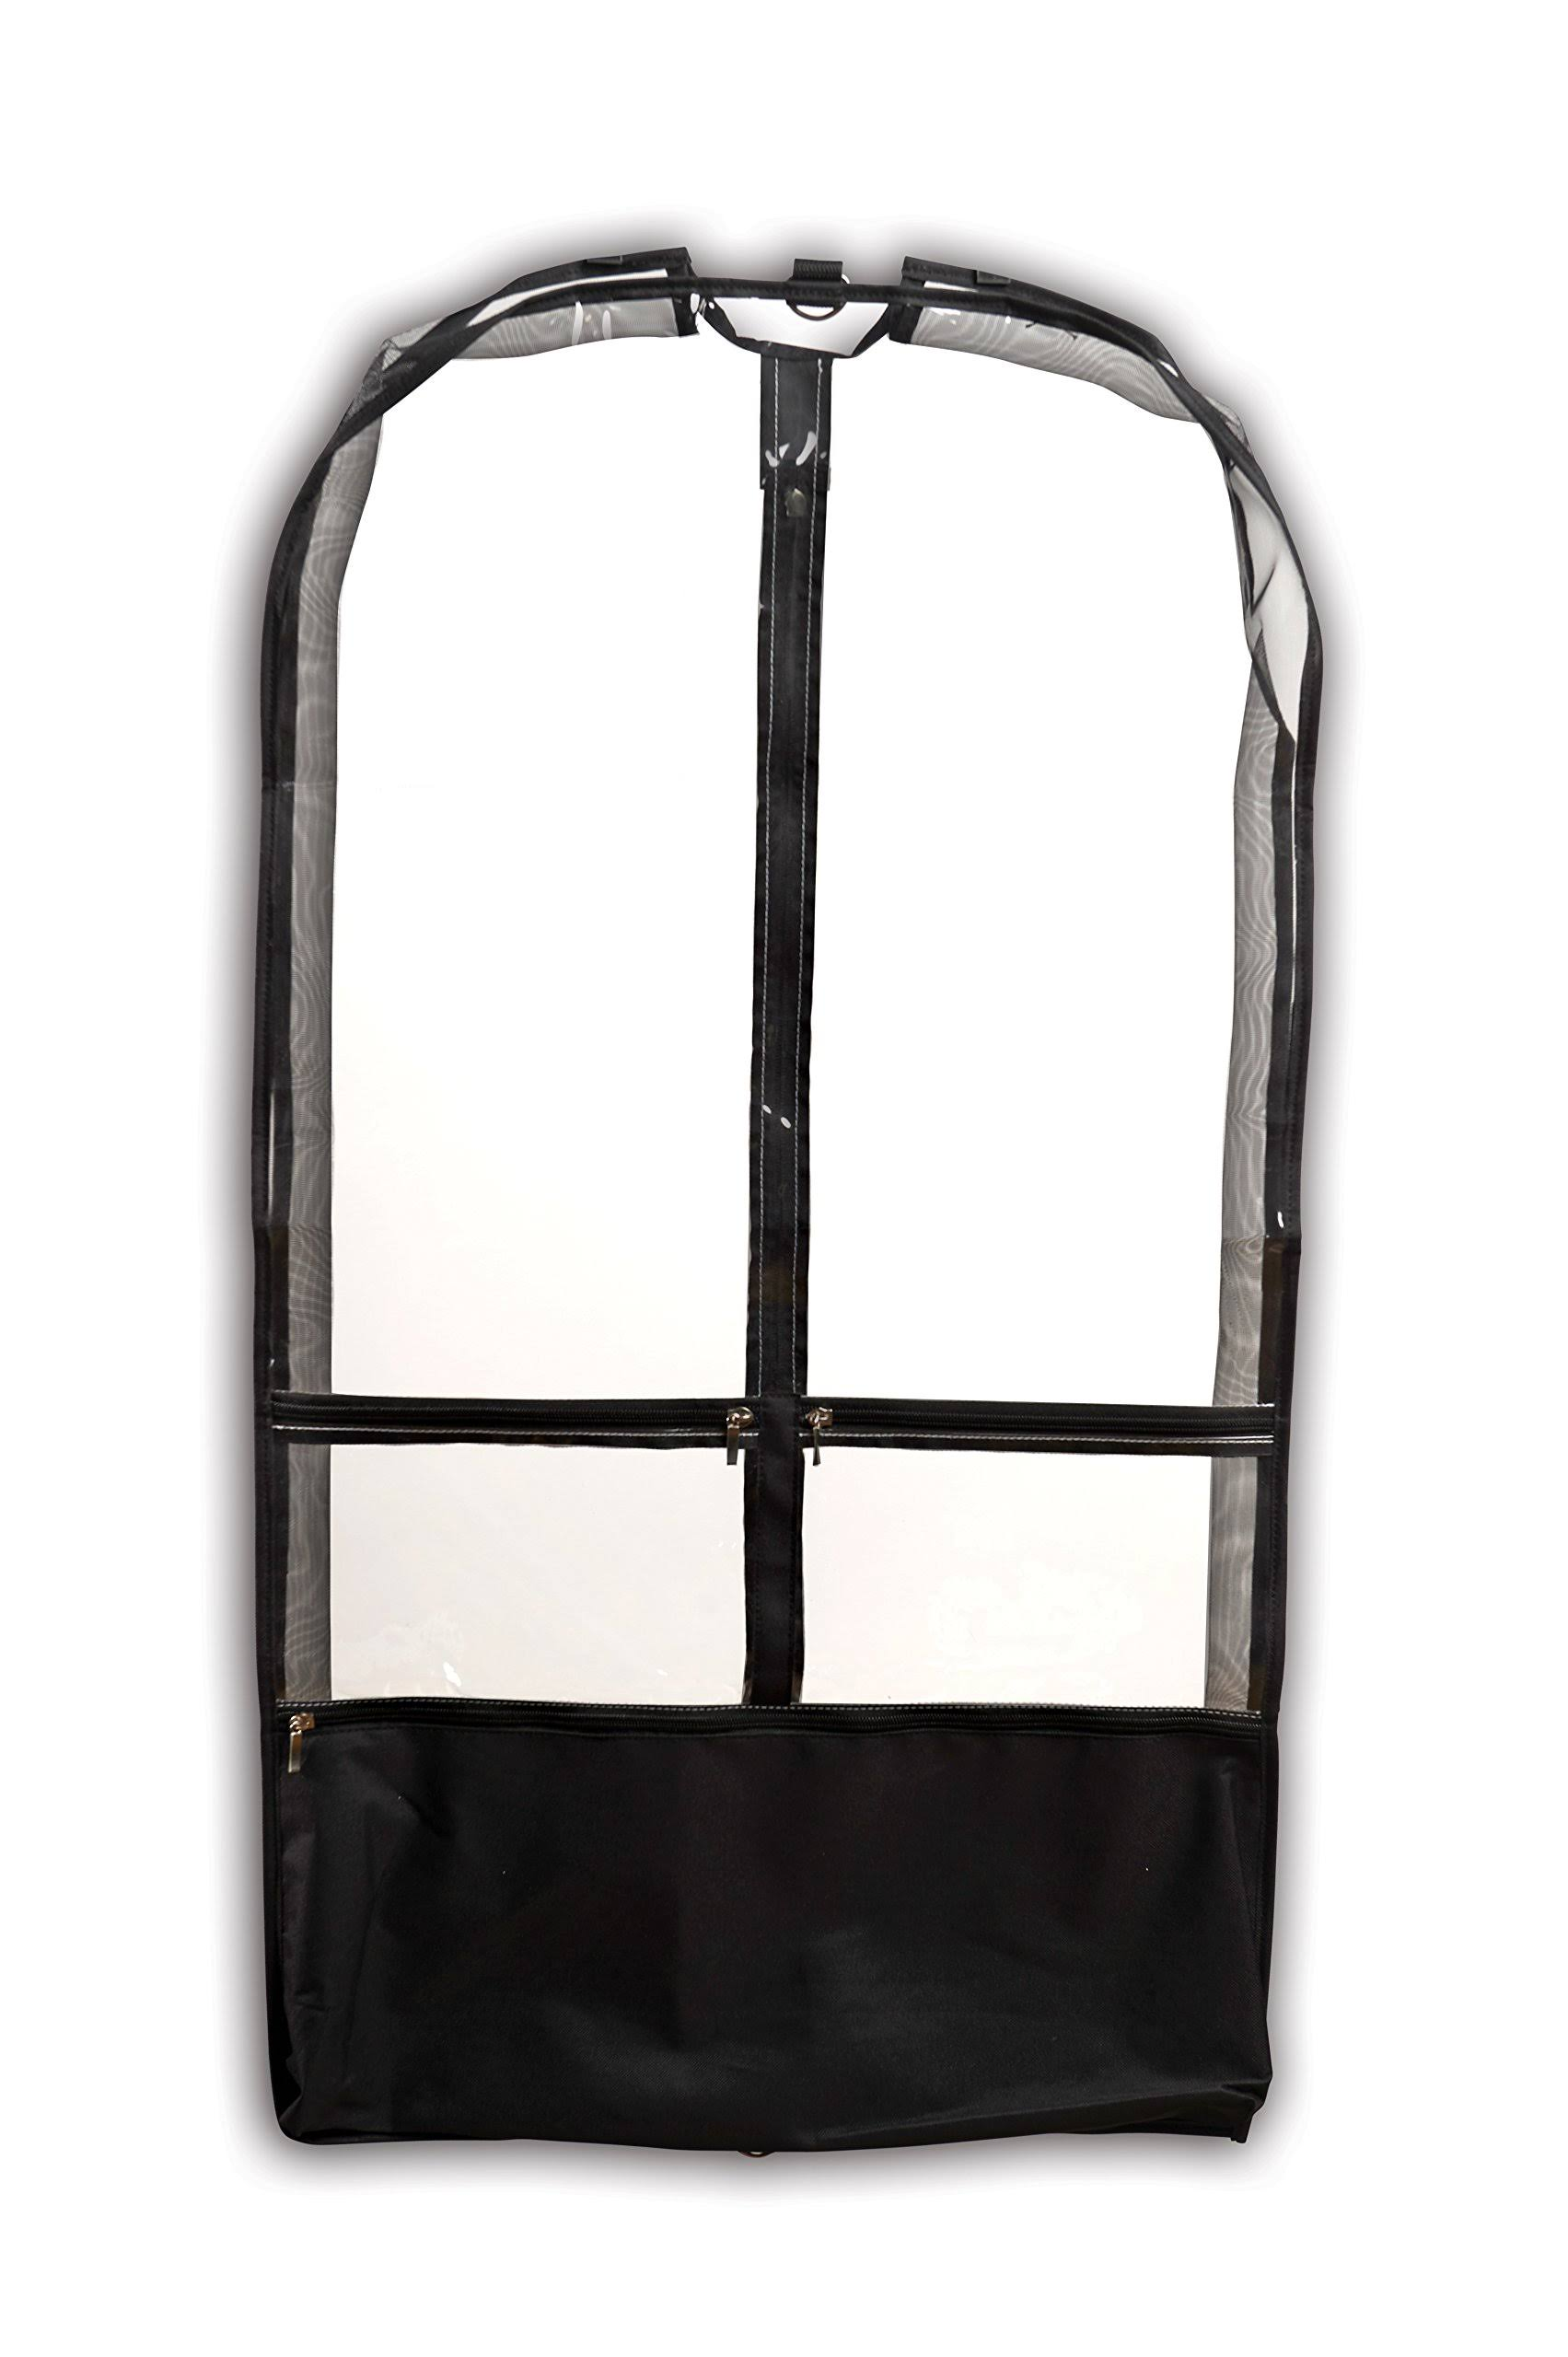 Dansbagz Competition Garment Bag (Black)